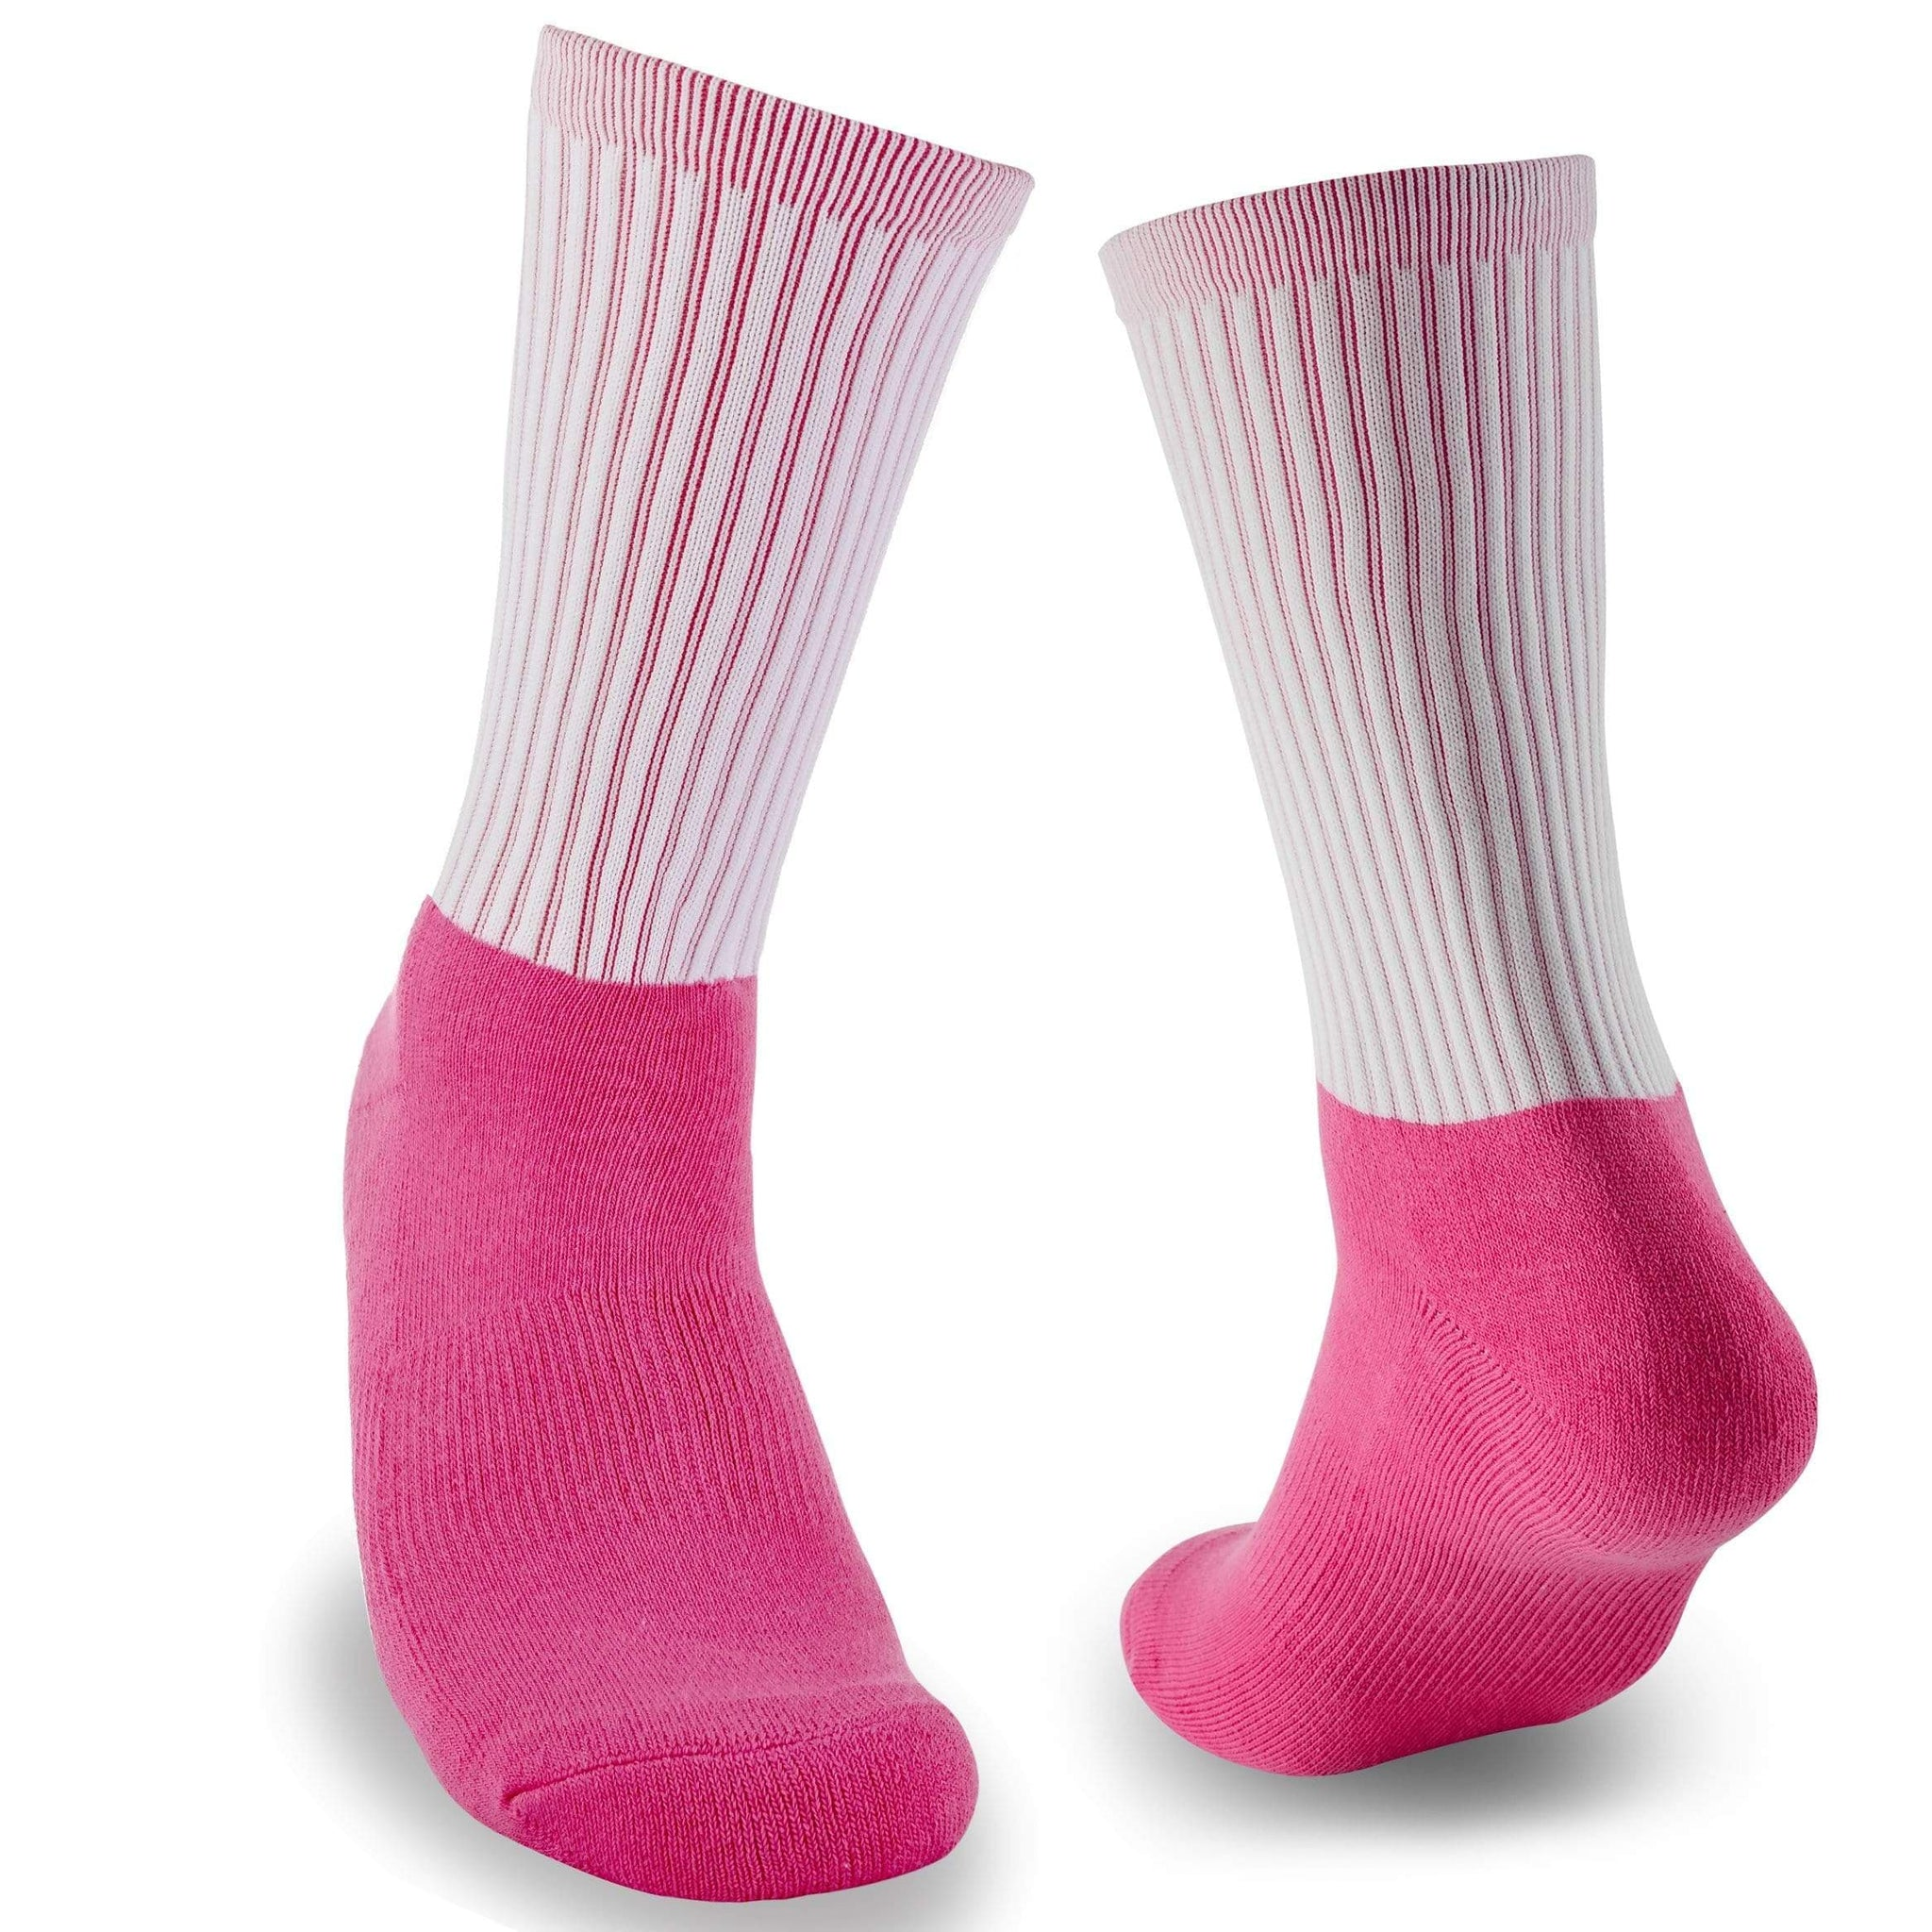 Blank Athletic Socks- Pink Foot Pink Interior Socks for Sublimation